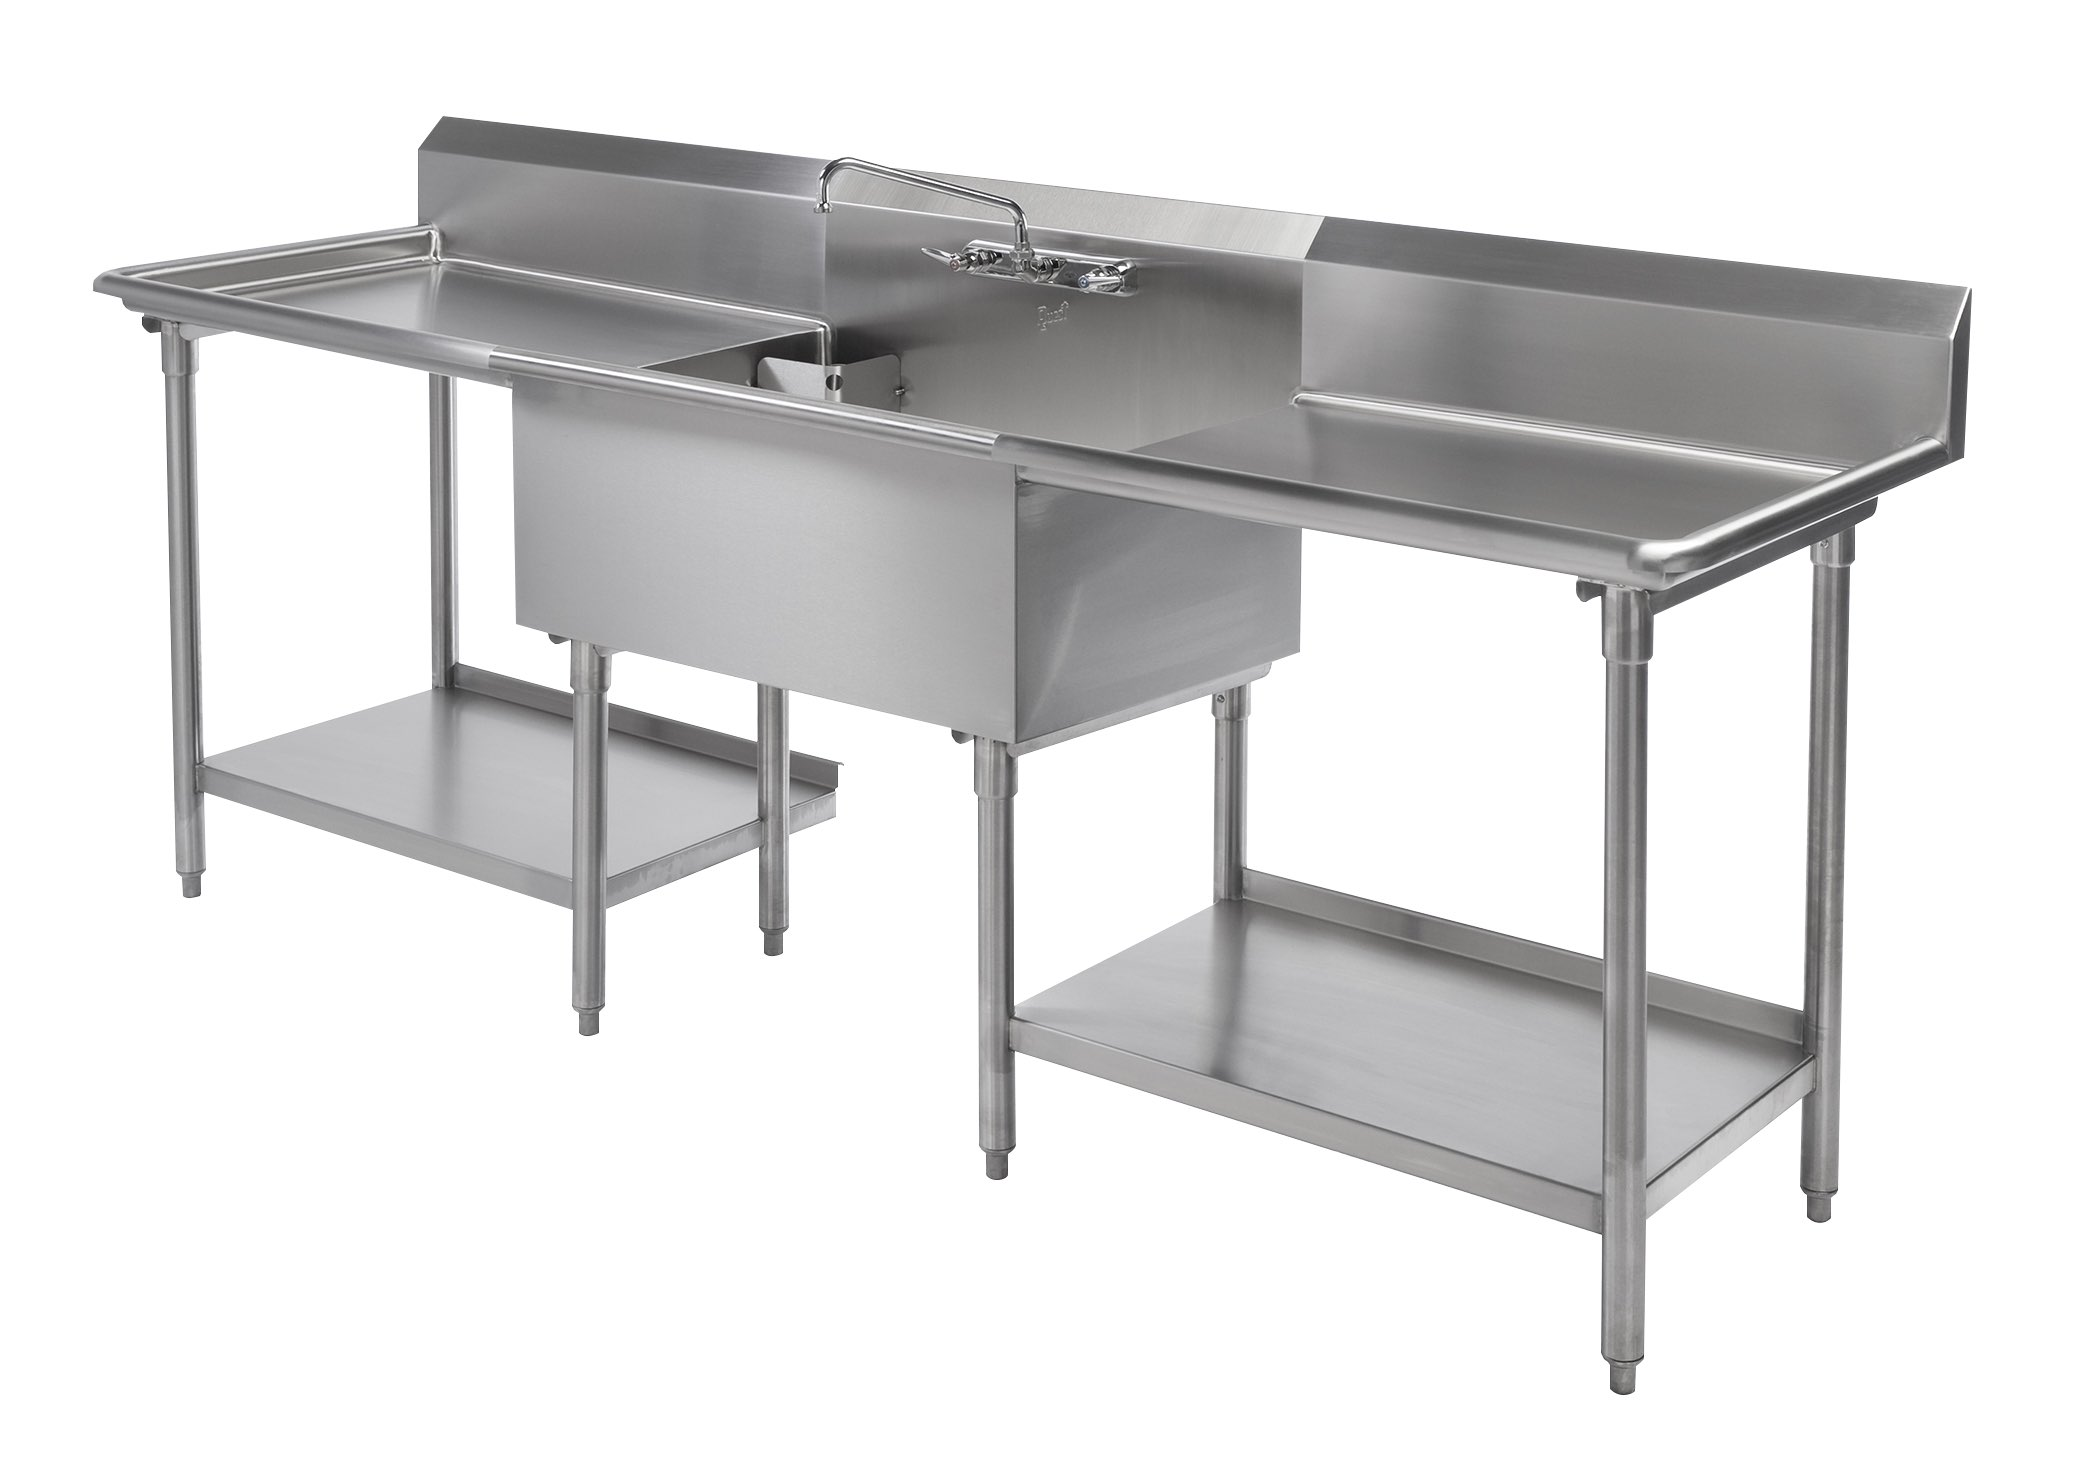 Product » Deluxe Sinks